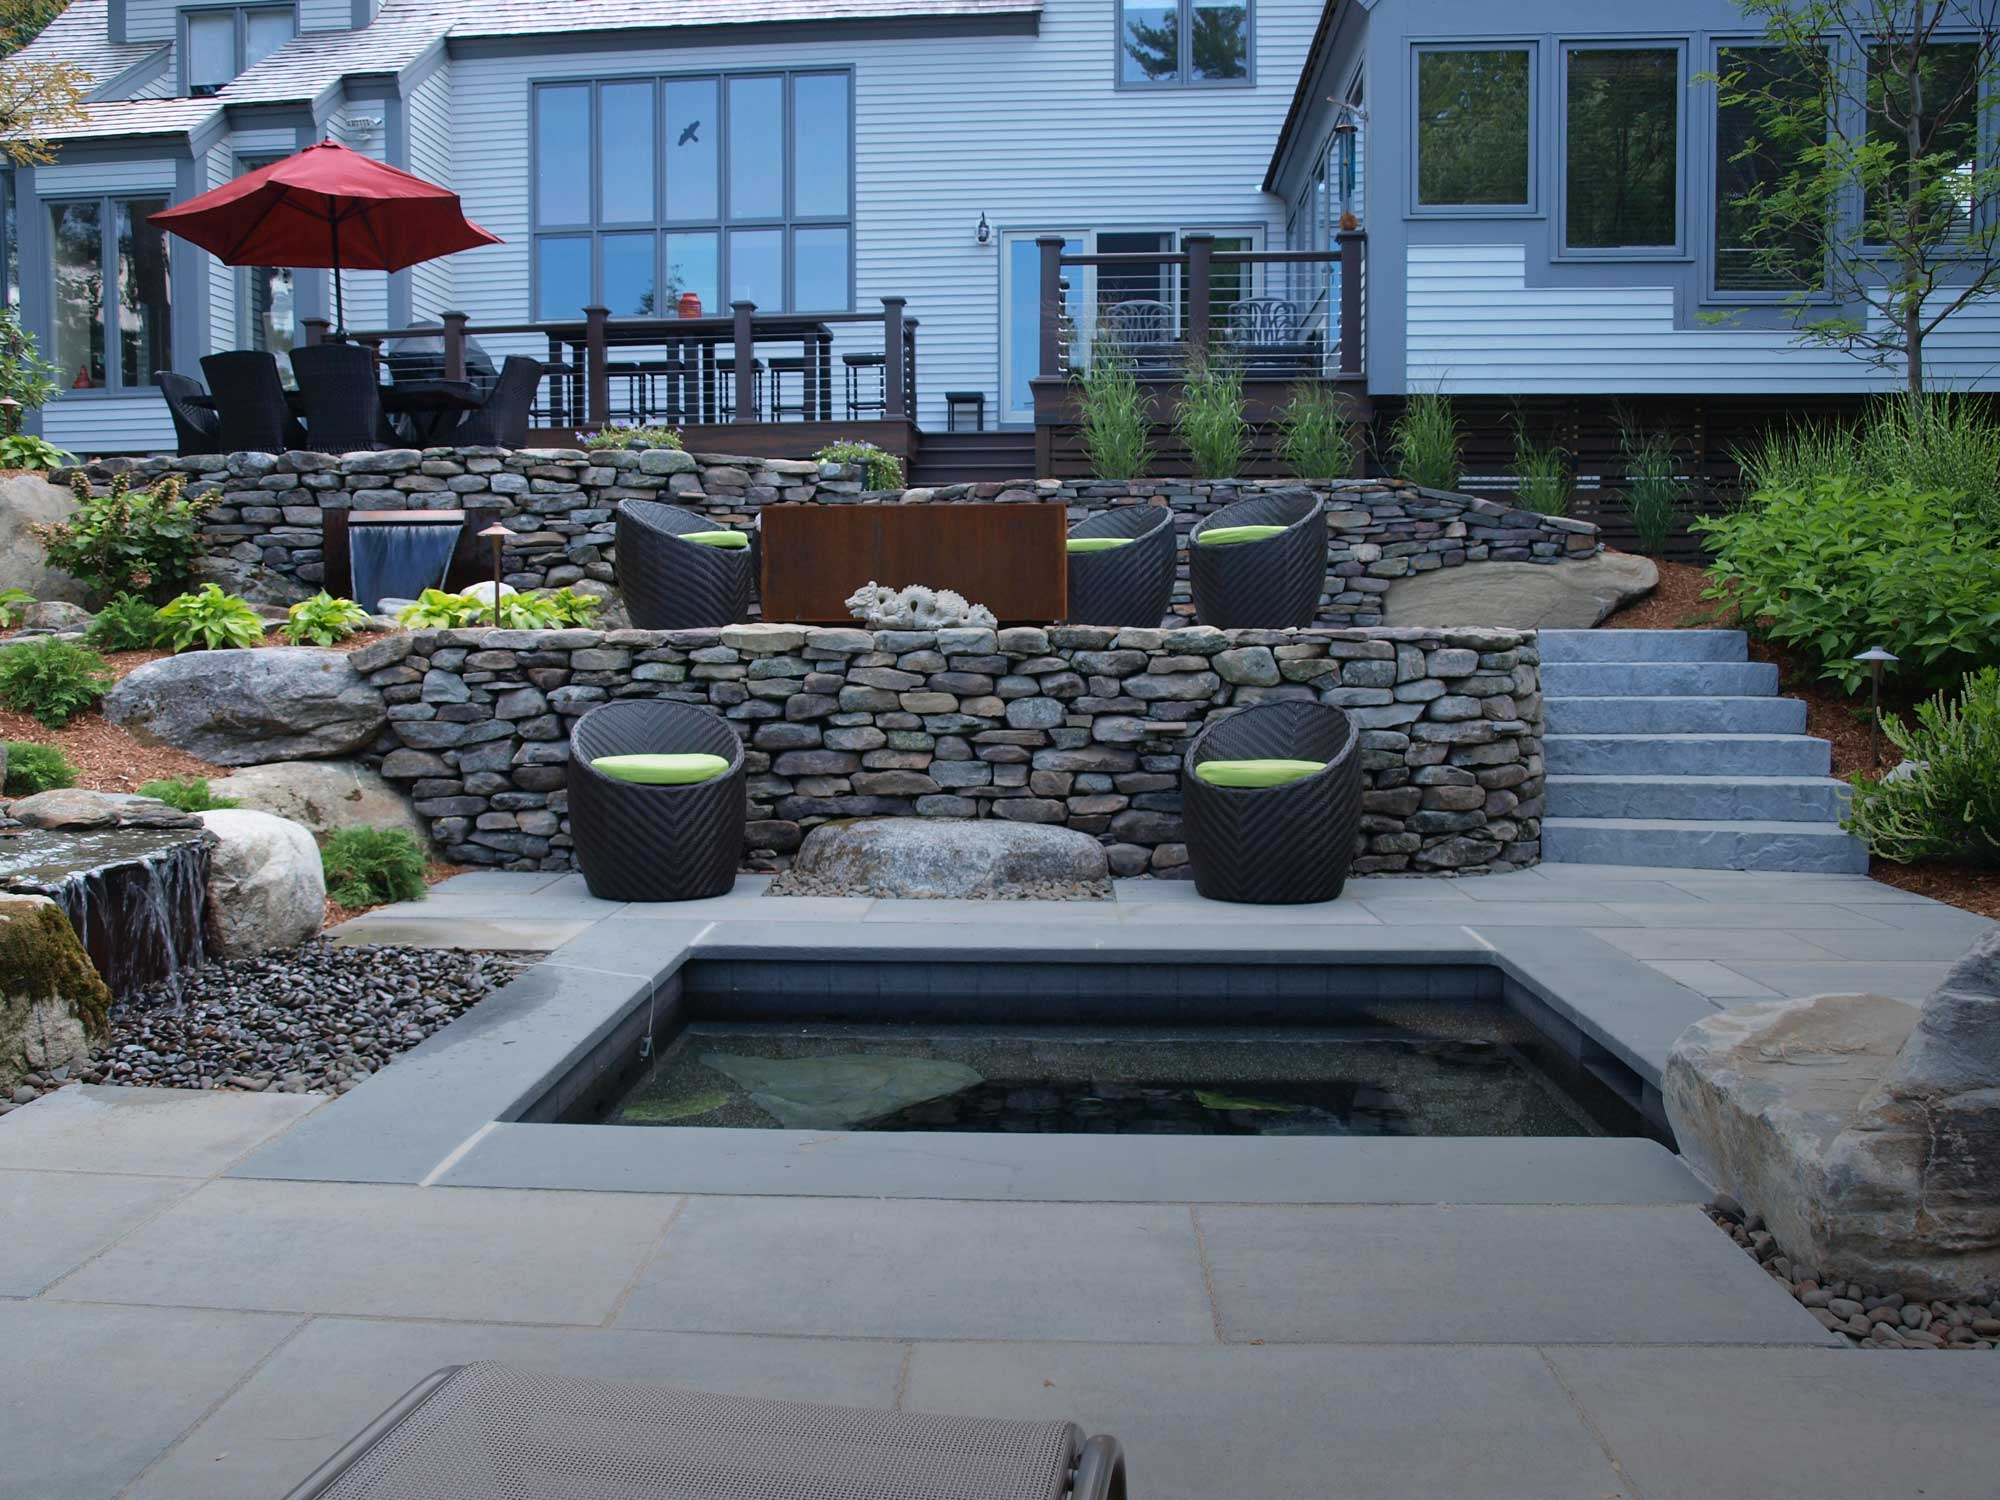 U201cOne Of The Few Landscape Design Companies That Will Design And Oversee The  Project U0027til The Finish. Great Company. Would Highly Recommend Their  Services.u201d